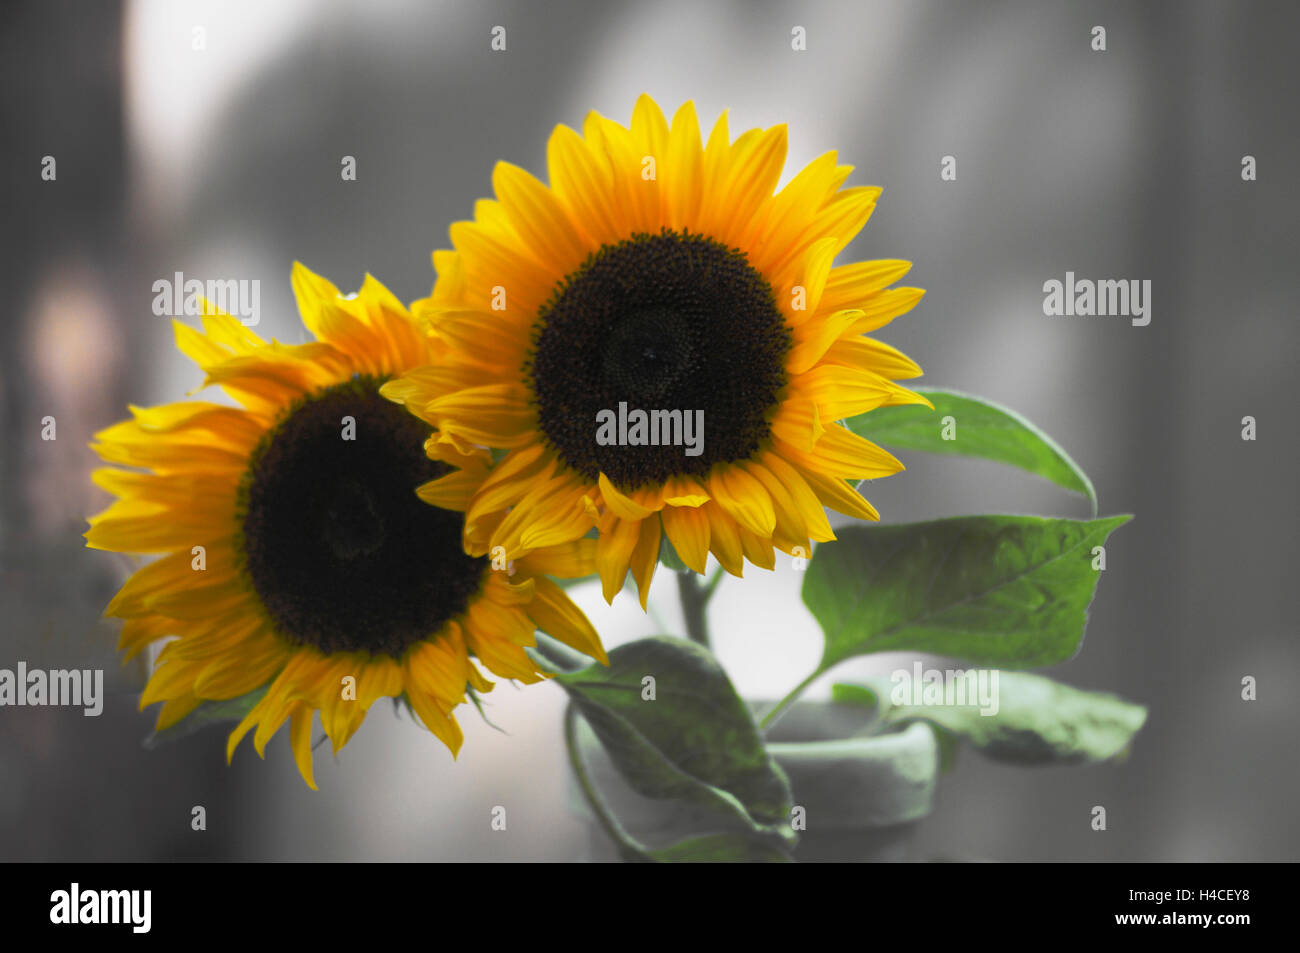 Two sunflowers in front of blurred background - Stock Image